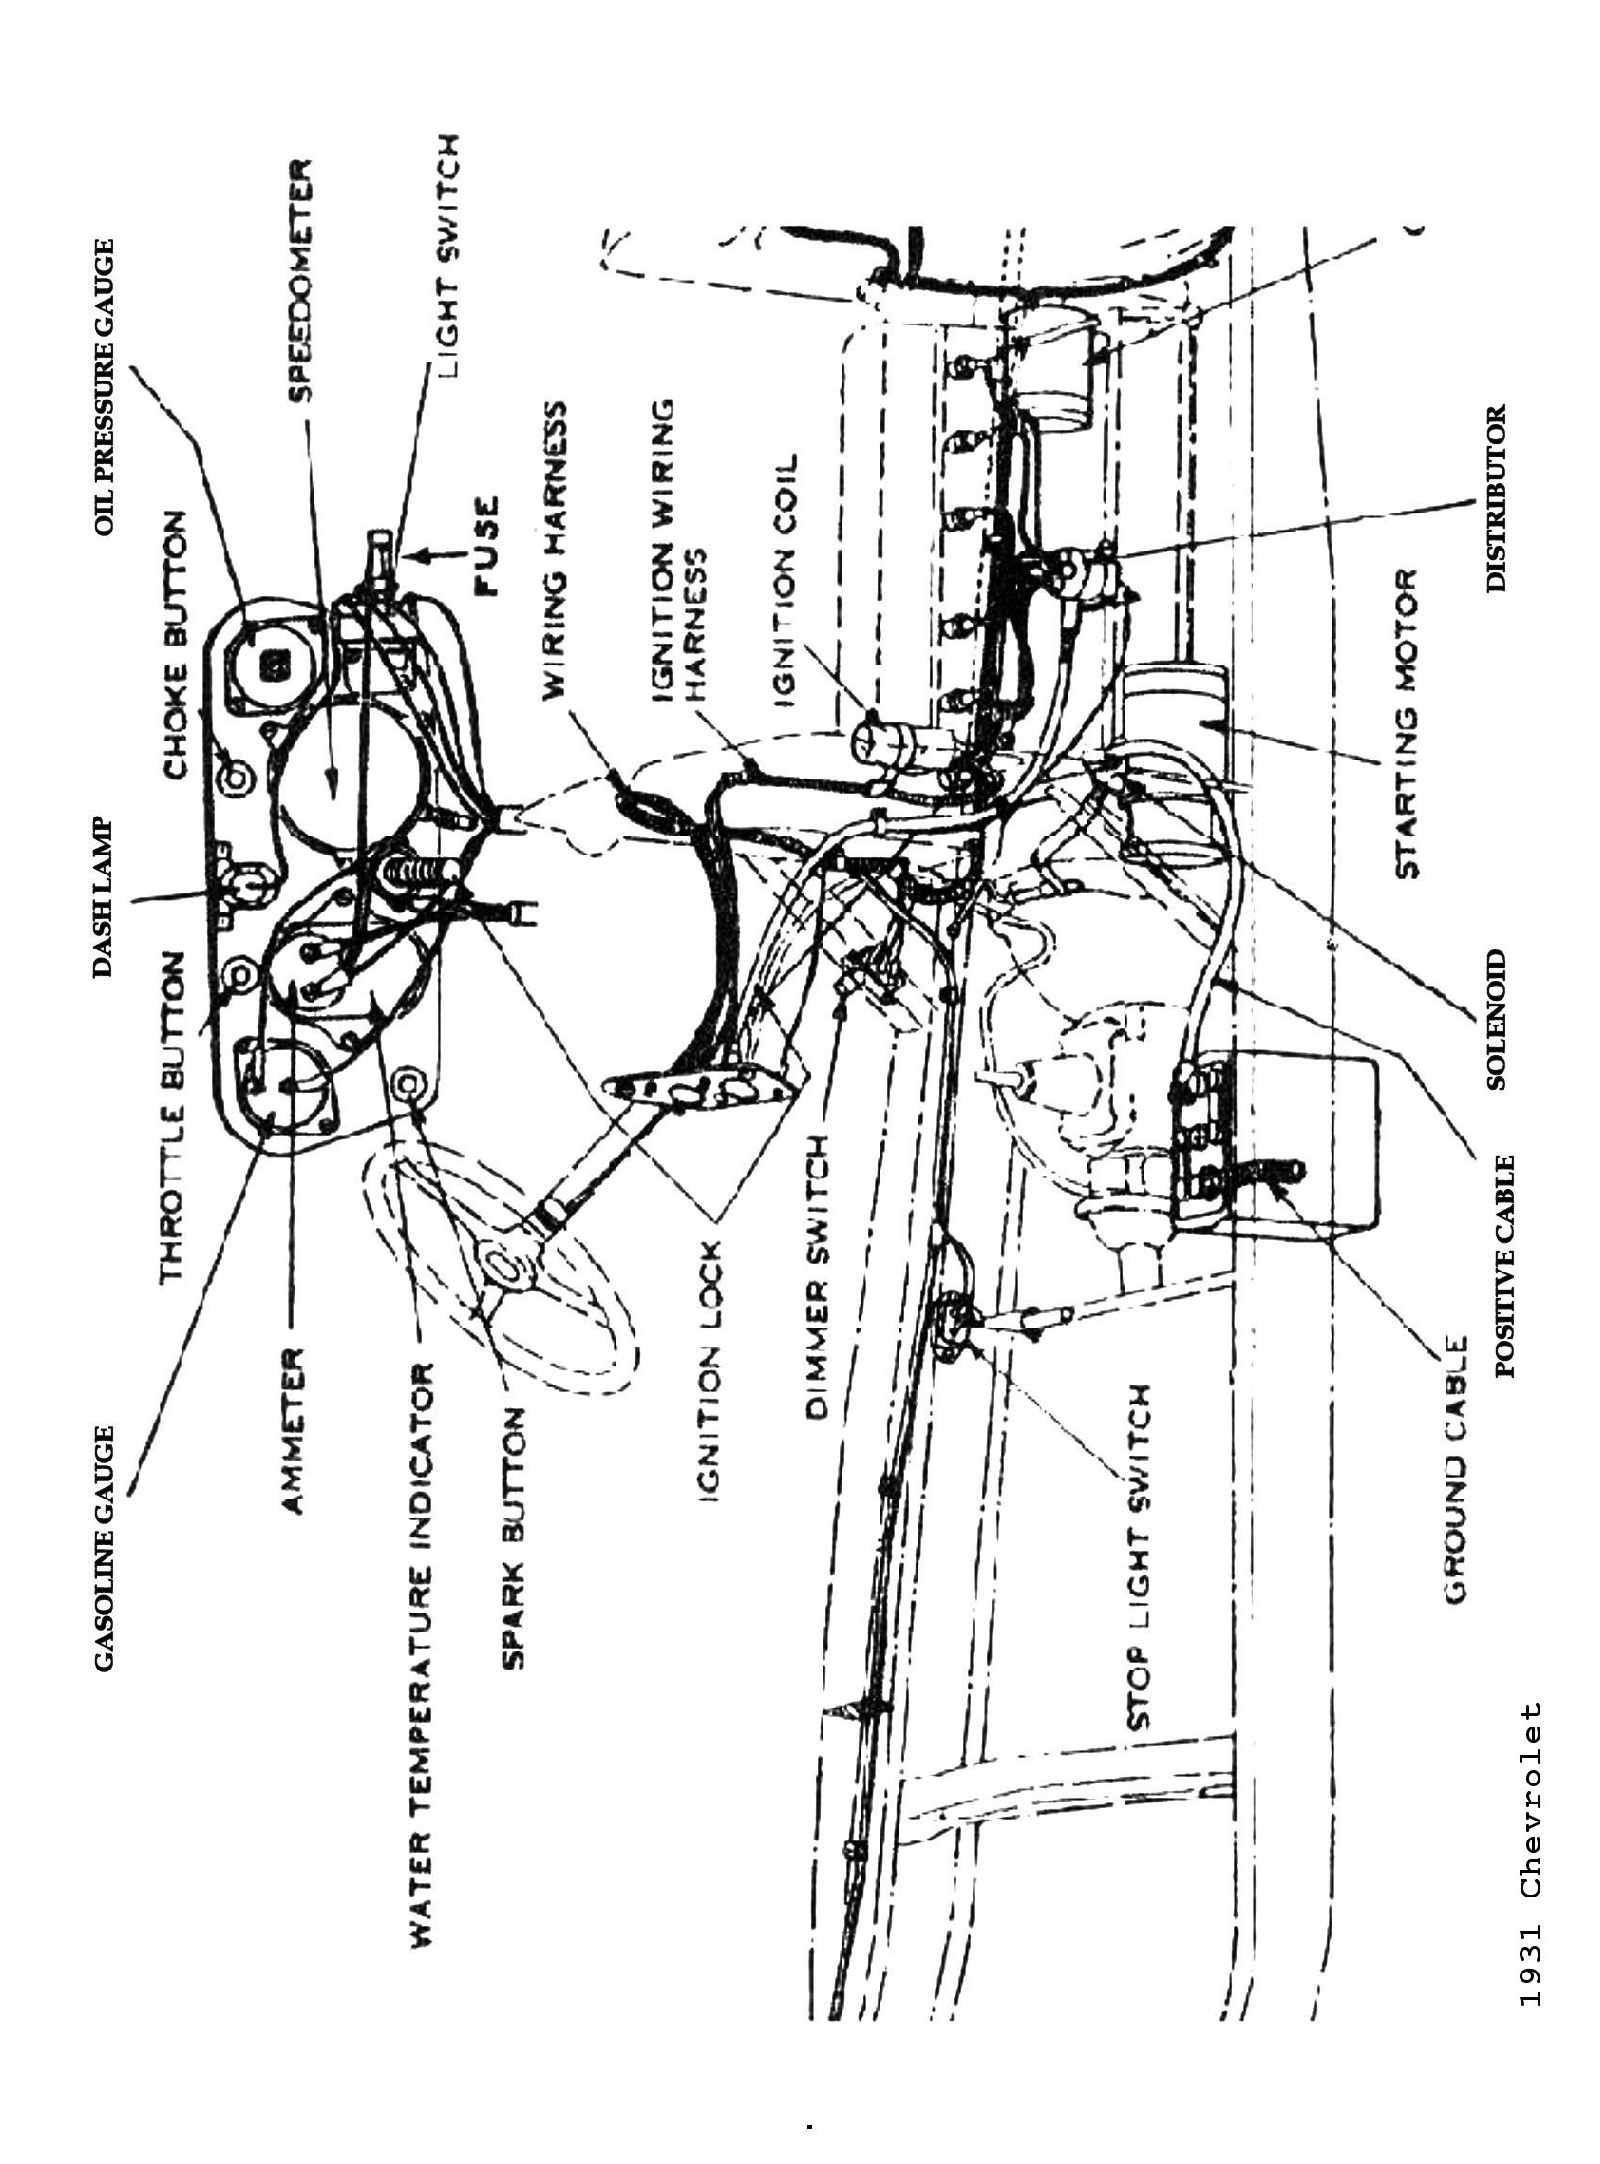 Harness on 1928 Chevrolet Wiring Diagram